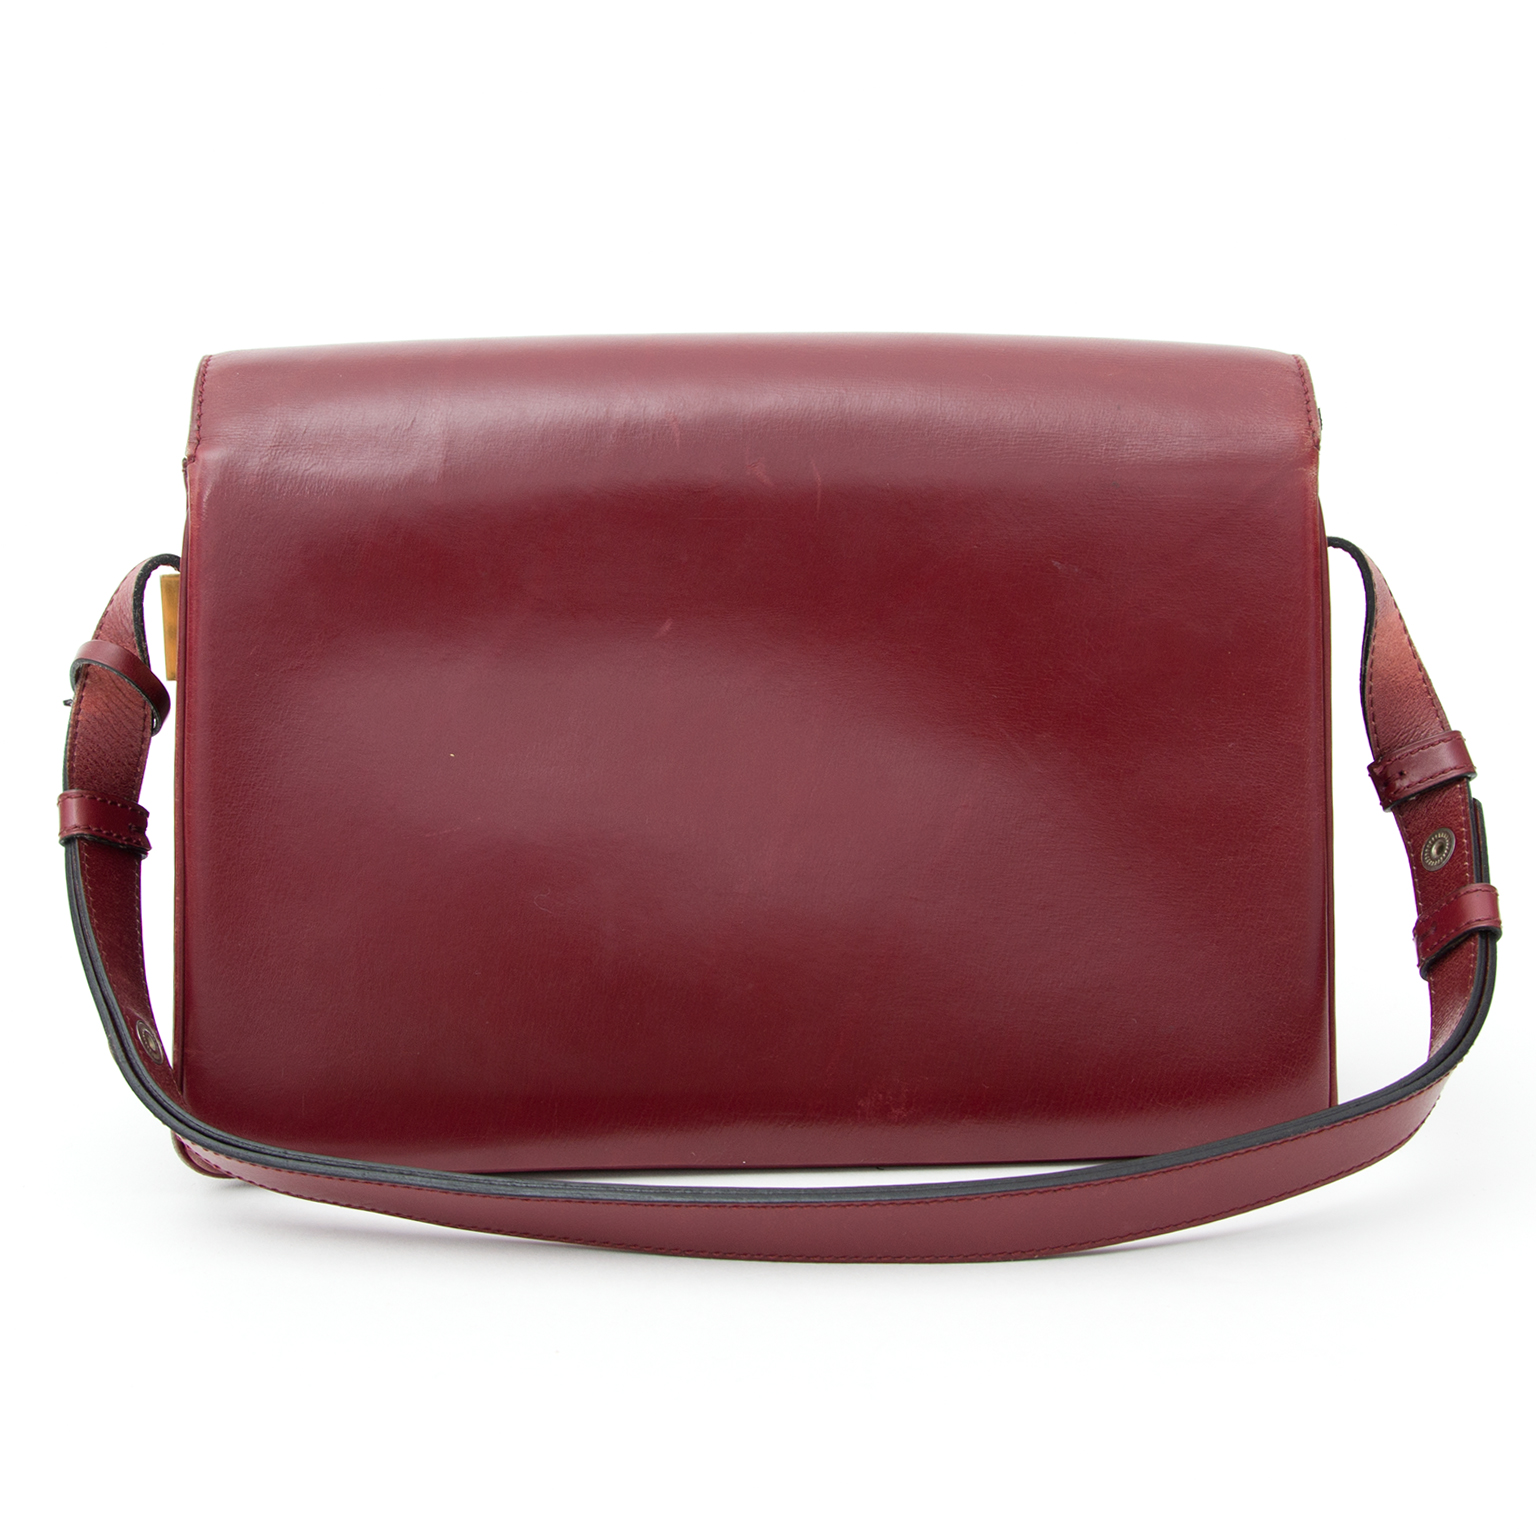 ... Delvaux Burgundy Madame Shoulder Bag secondhand authentic safe online  shopping webshop fashion style Antwerp Belgium LabelLOV 63f8106330797